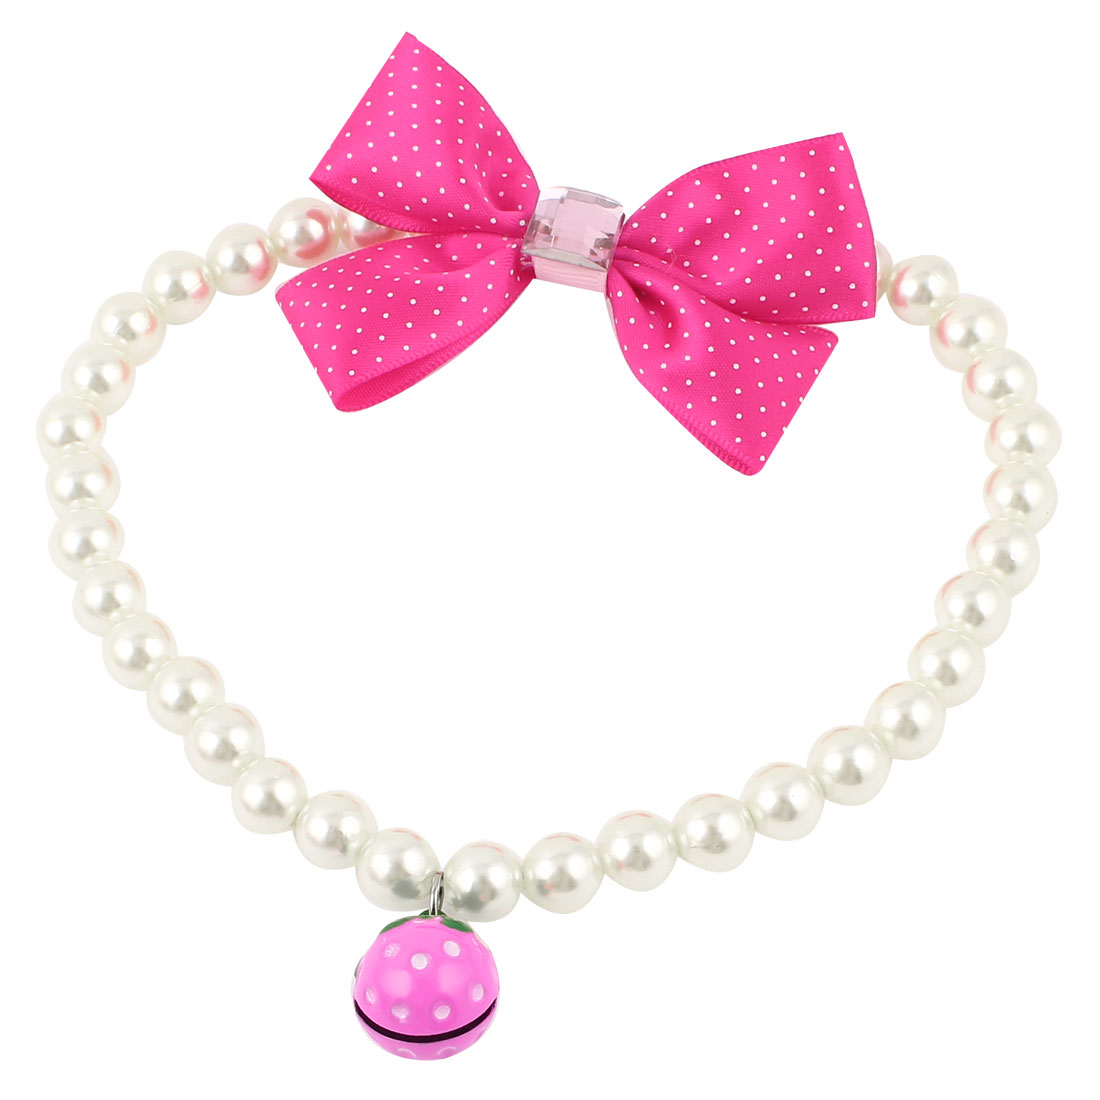 Metal Bell Pendant Bowknot Accent Pet Dog Plastic Imitation Pearls Collar Necklace White Fuchsia L